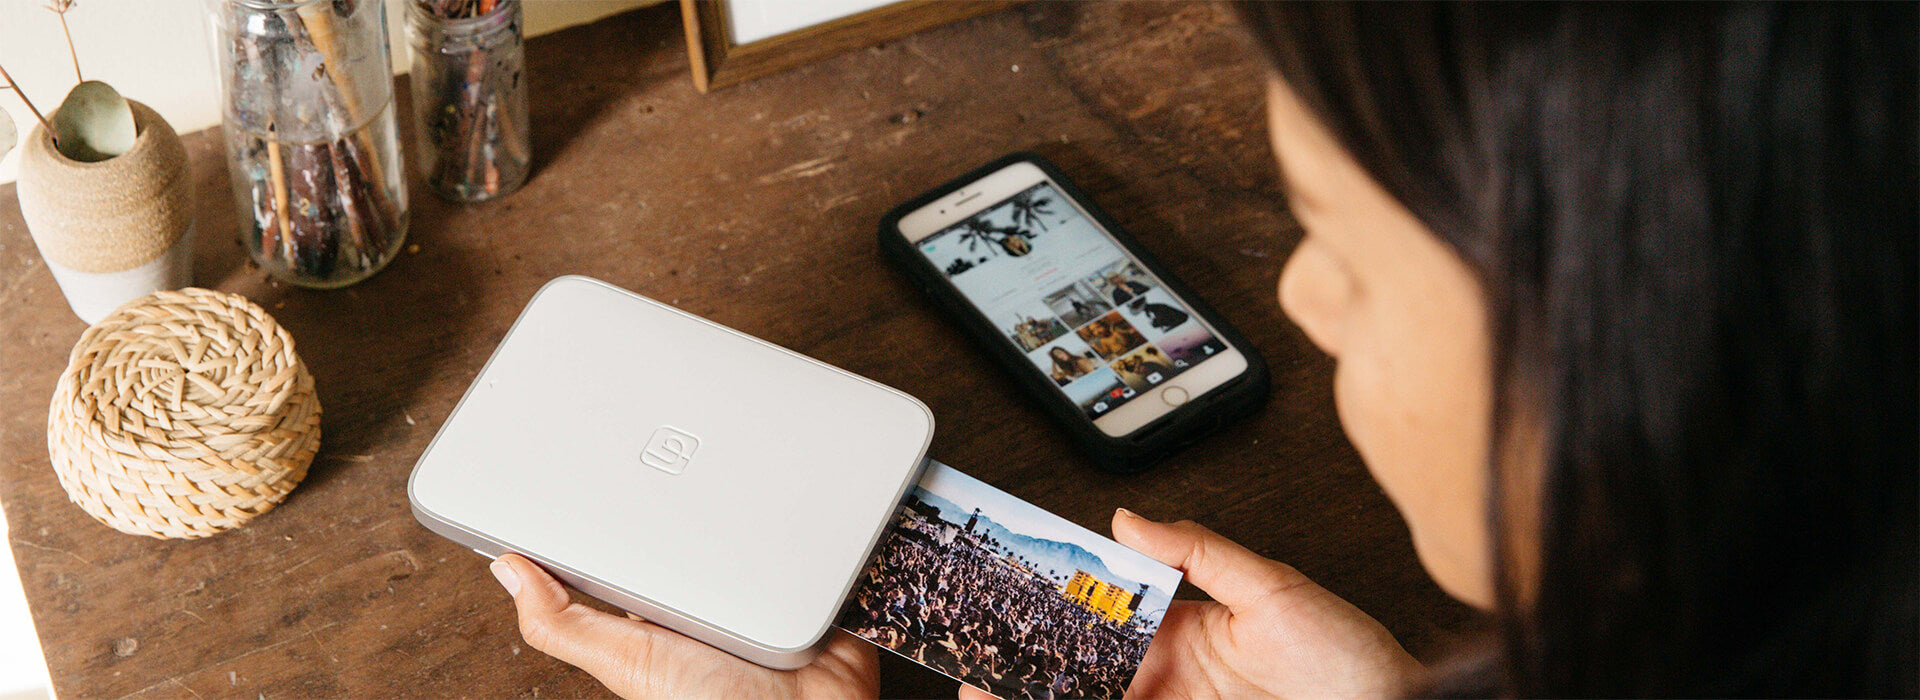 lifeprint 3x4.5 paper  Lifeprint Instant Photo Printers for iPhone and Android – Lifeprint ...